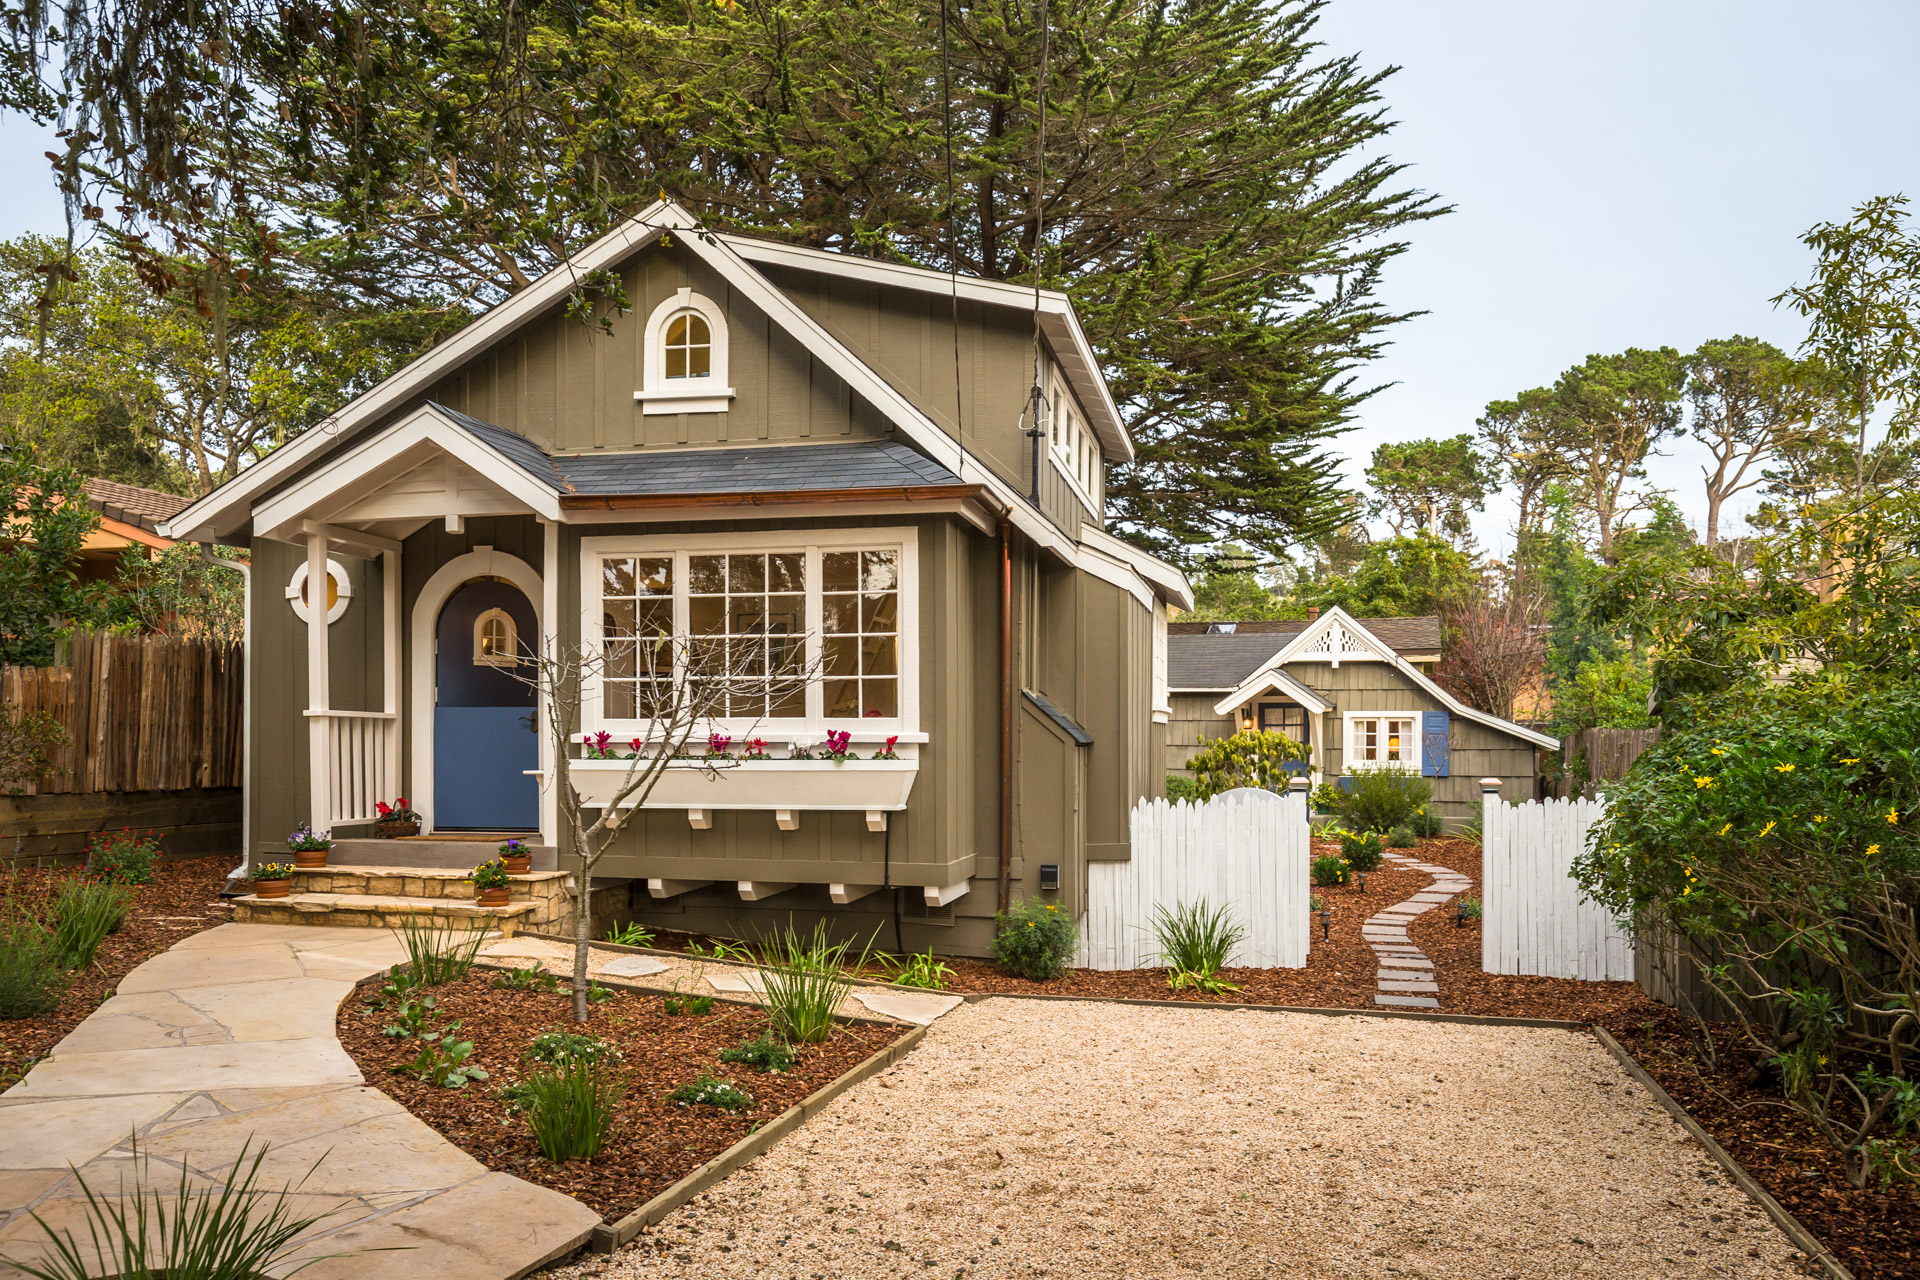 ca the of ave beach orange cabins for county awesome in sale california on seal houses ocean homes